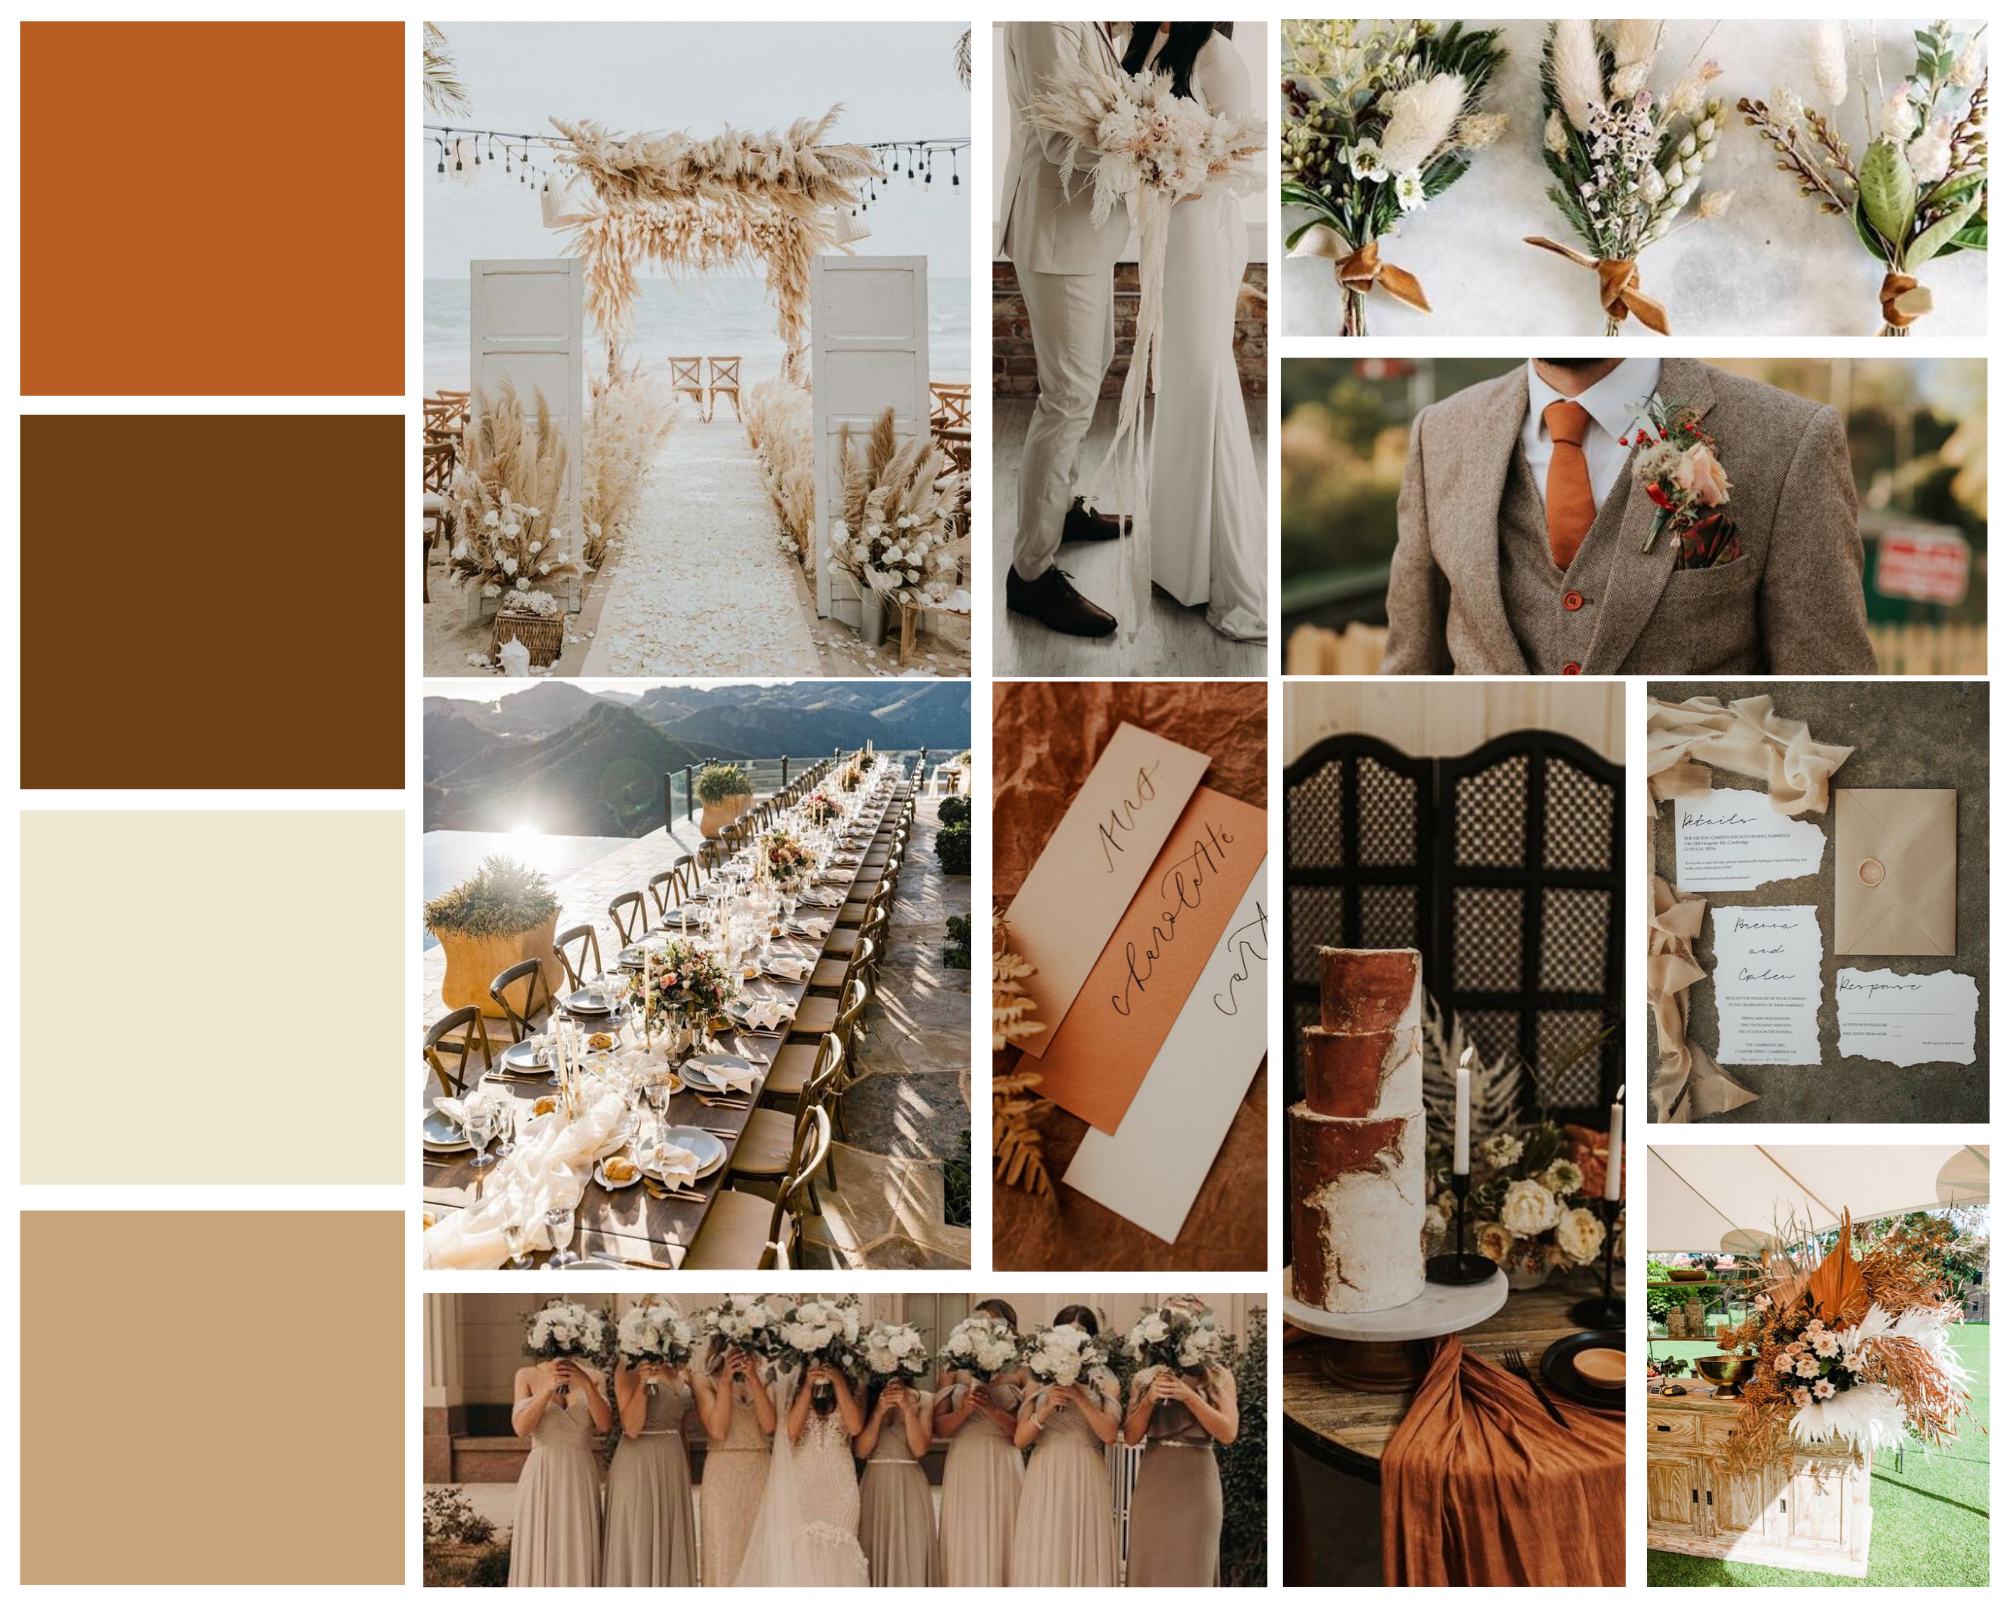 mood board for rustic wedding with neutrals and orange